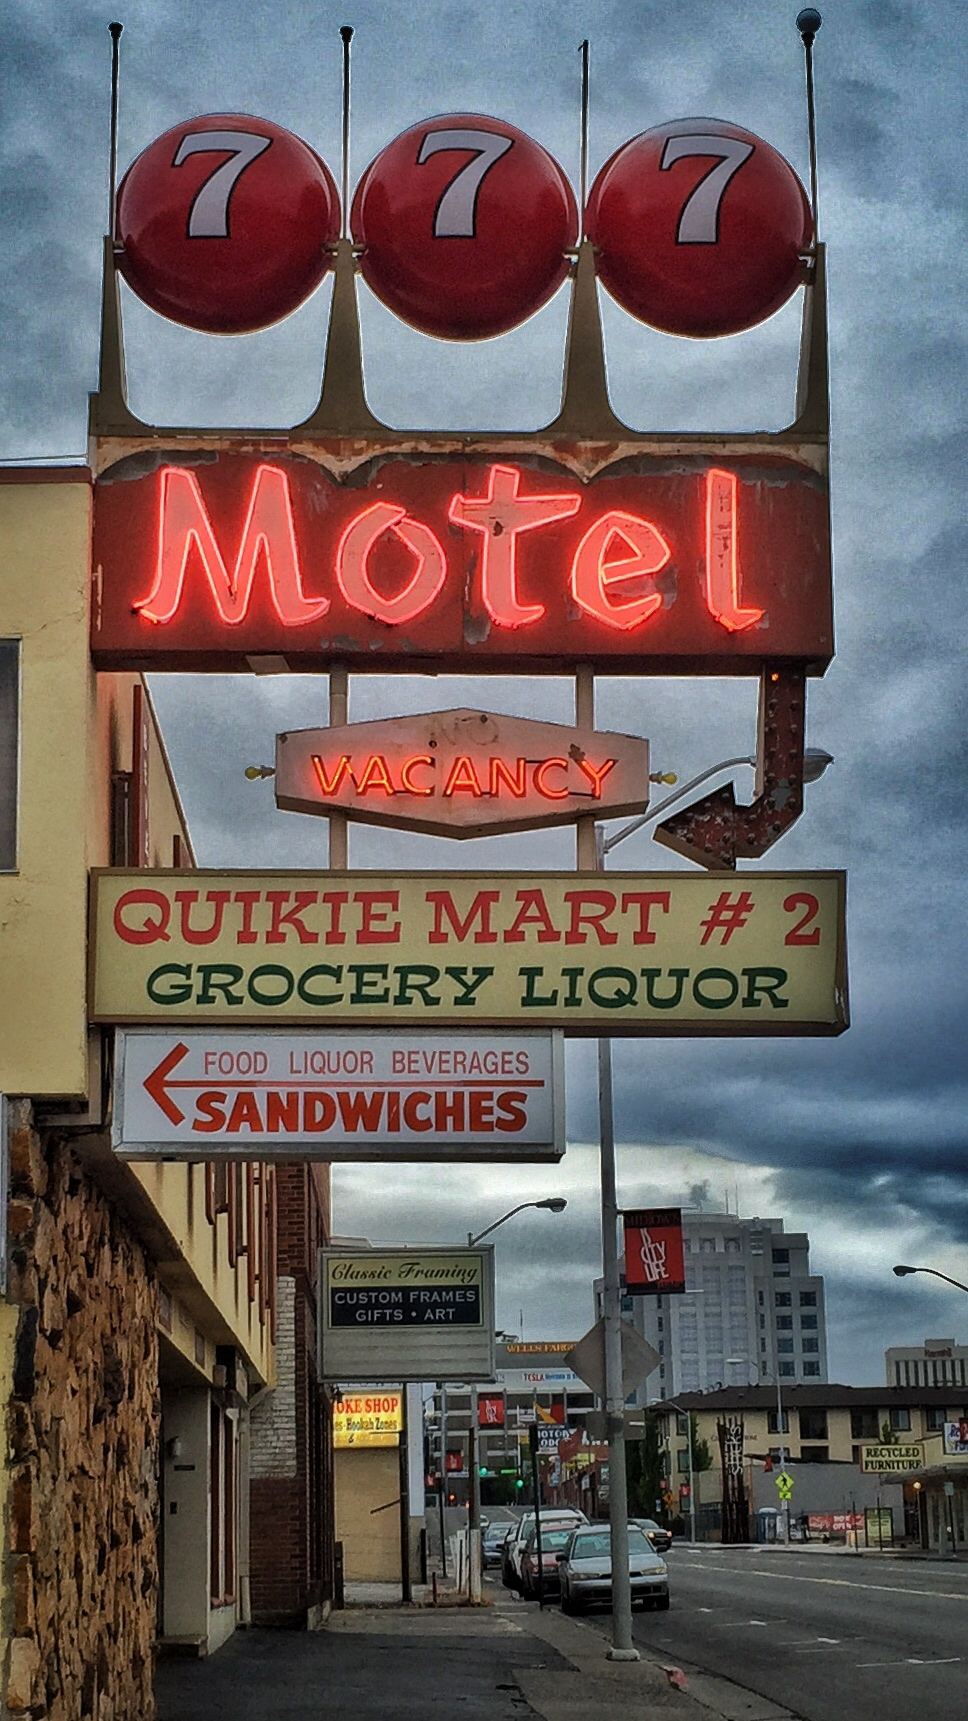 777 Motel - 777 South Virginia Street, Reno, Nevada U.S.A. - May 22, 2015